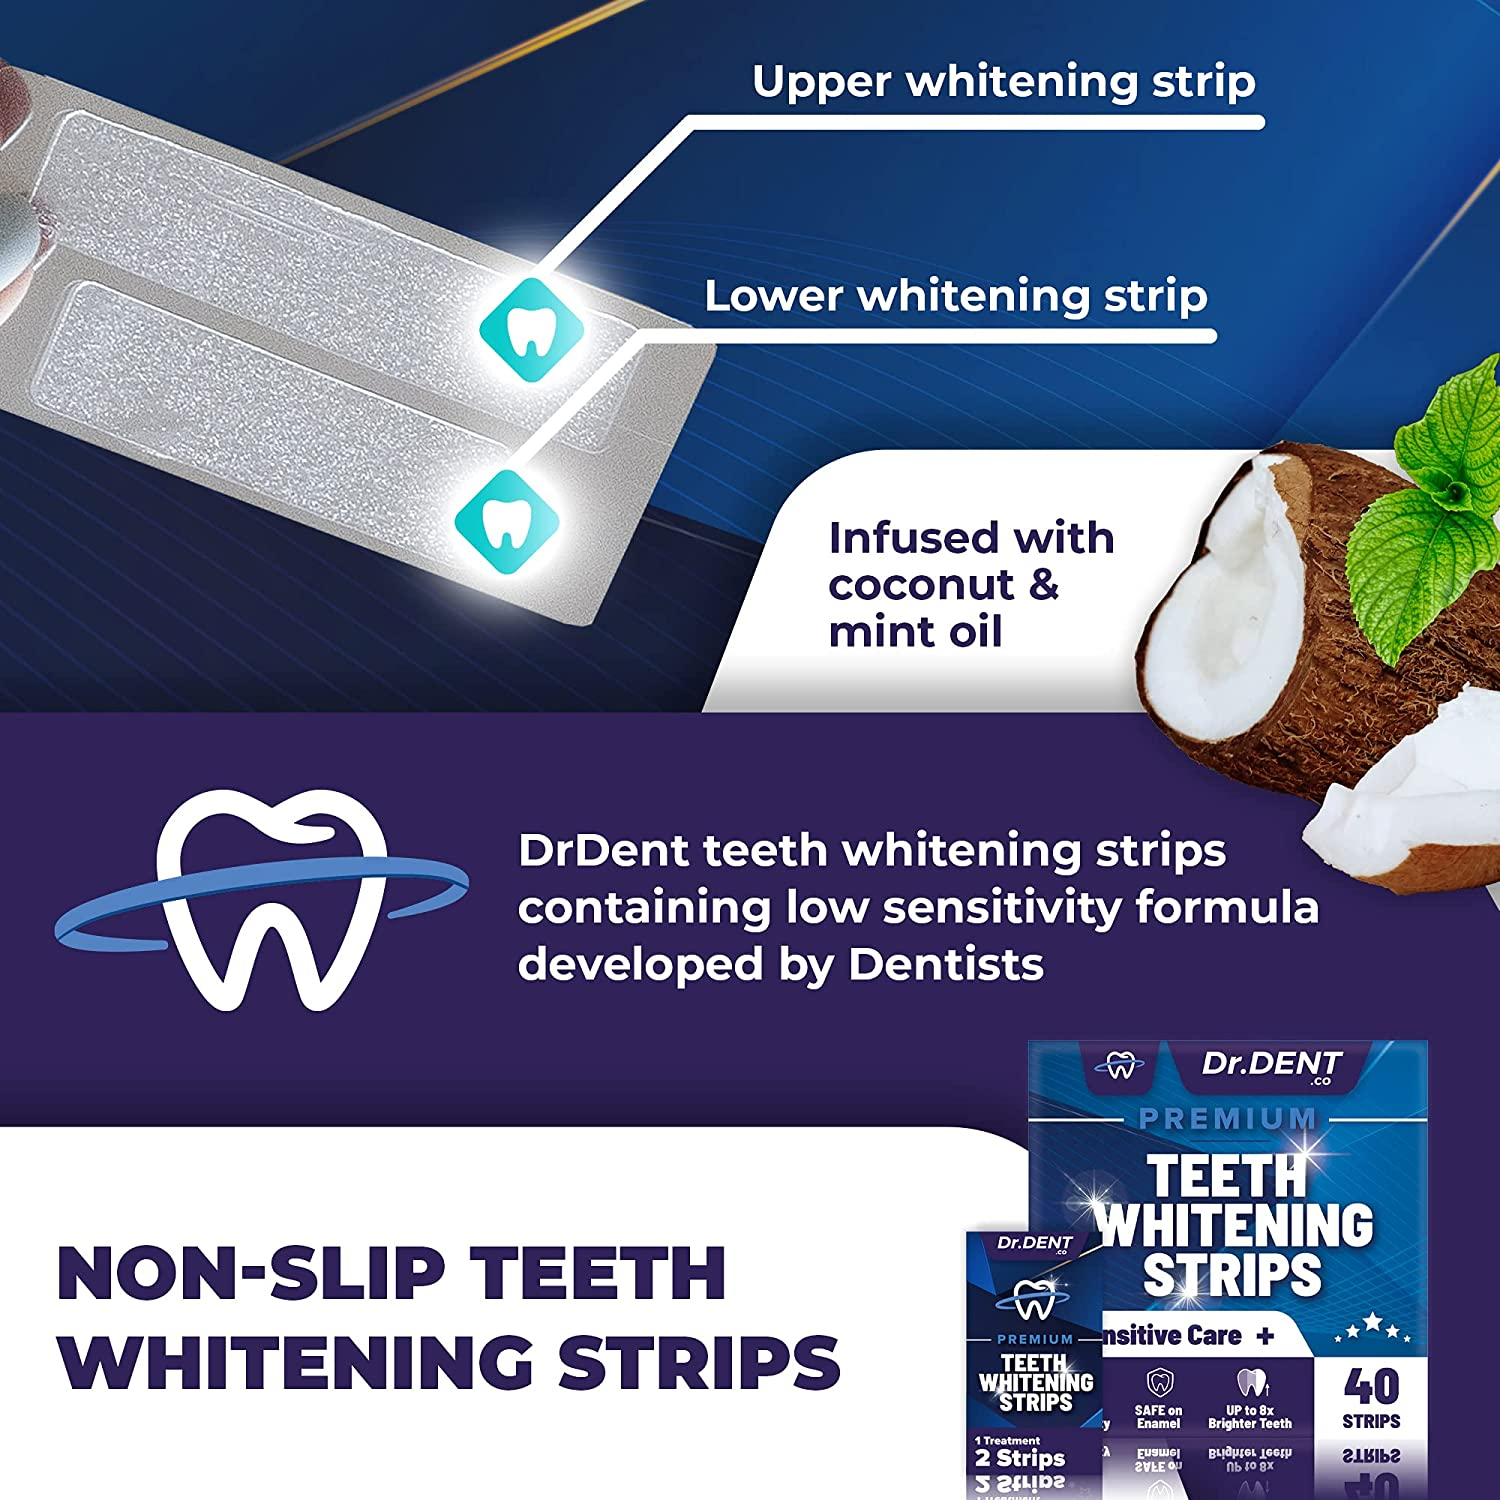 DrDent Premium Teeth Whitening Strips - 40 Whitening Strips = 20 Whitening Sessions - Non-Sensitive Formula - Removes Stains from Coffee and Tea - Safe for Enamel + Mouth Opener Included : Beauty & Personal Care